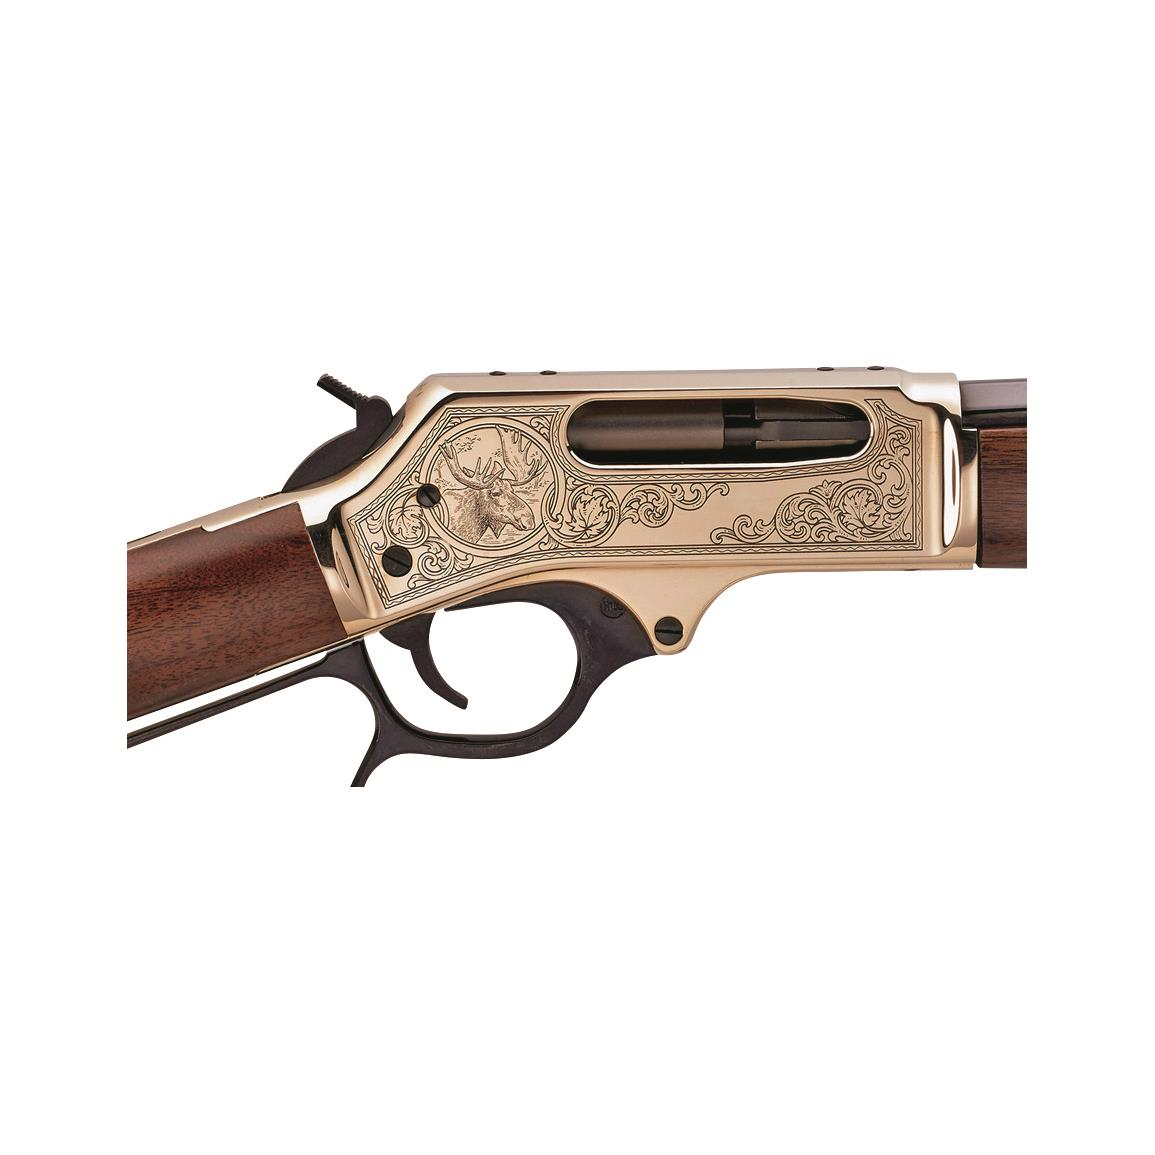 Receiver is engraved with a whitetail deer, giving it heirloom appeal